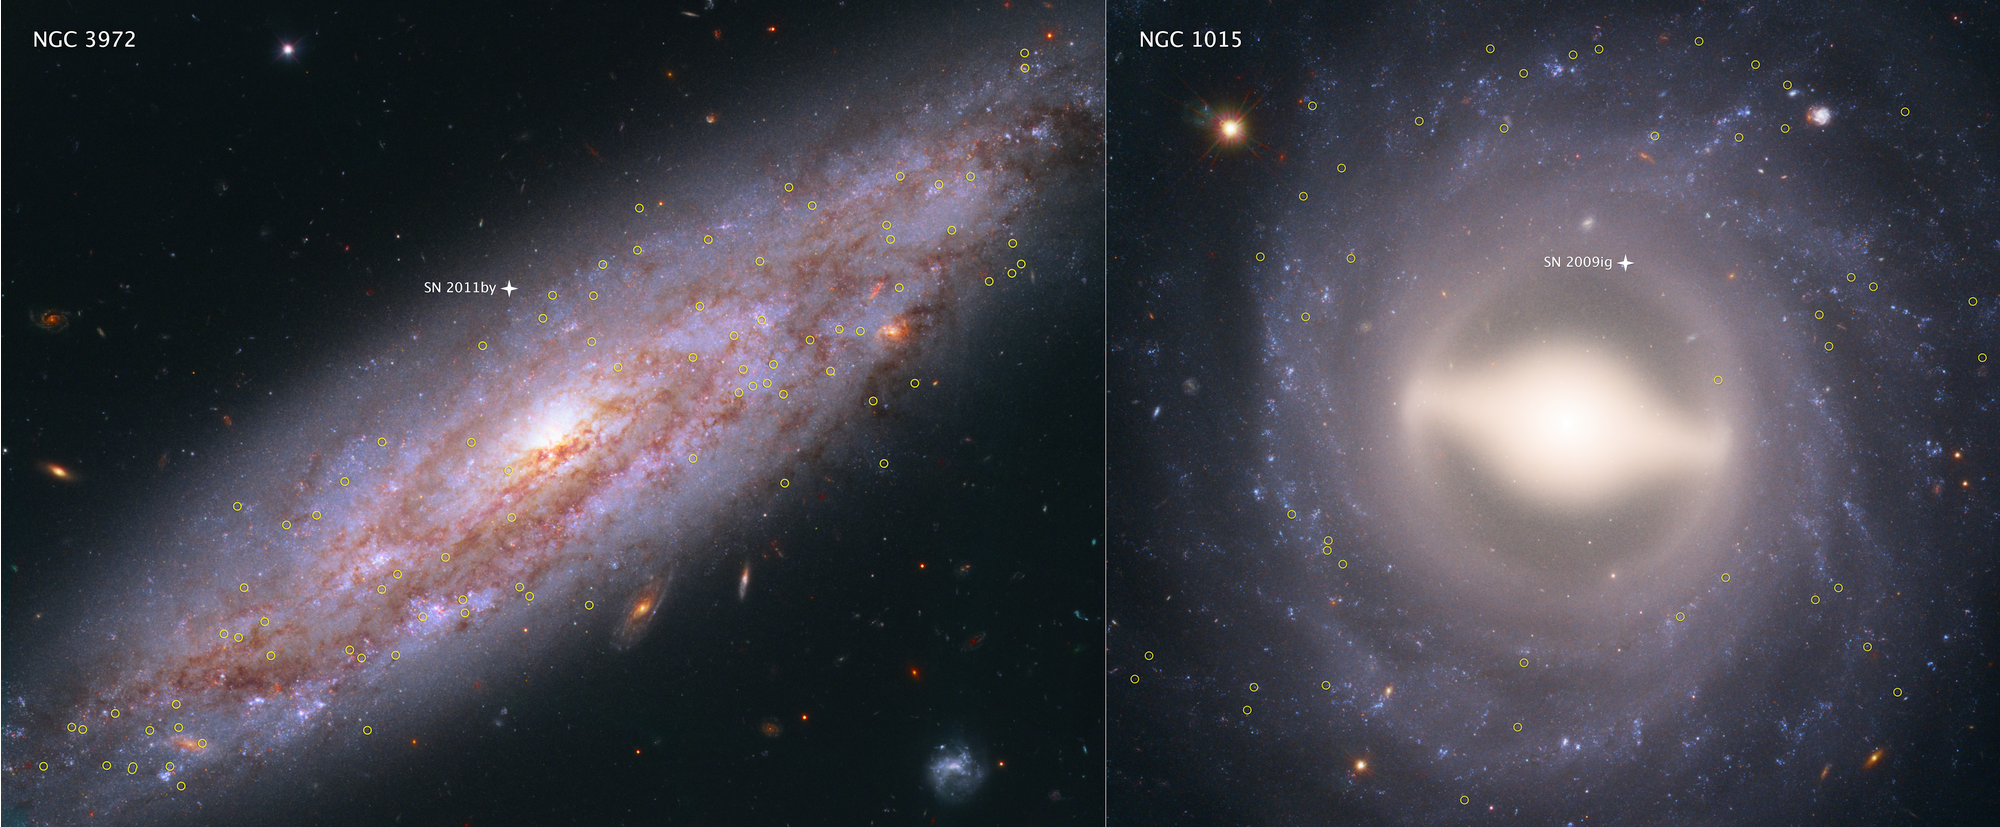 These Hubble Space Telescope images showcase two of the 19 galaxies analyzed in a project to improve the precision of the universe's expansion rate, a value known as the Hubble constant. The color-composite images show NGC 3972 (left) and NGC 1015 (right), located 65 million light-years and 118 million light-years, respectively, from Earth. The yellow circles in each galaxy represent the locations of pulsating stars called Cepheid variables. - Image Credits: NASA, ESA, A. Riess (STScI/JHU)